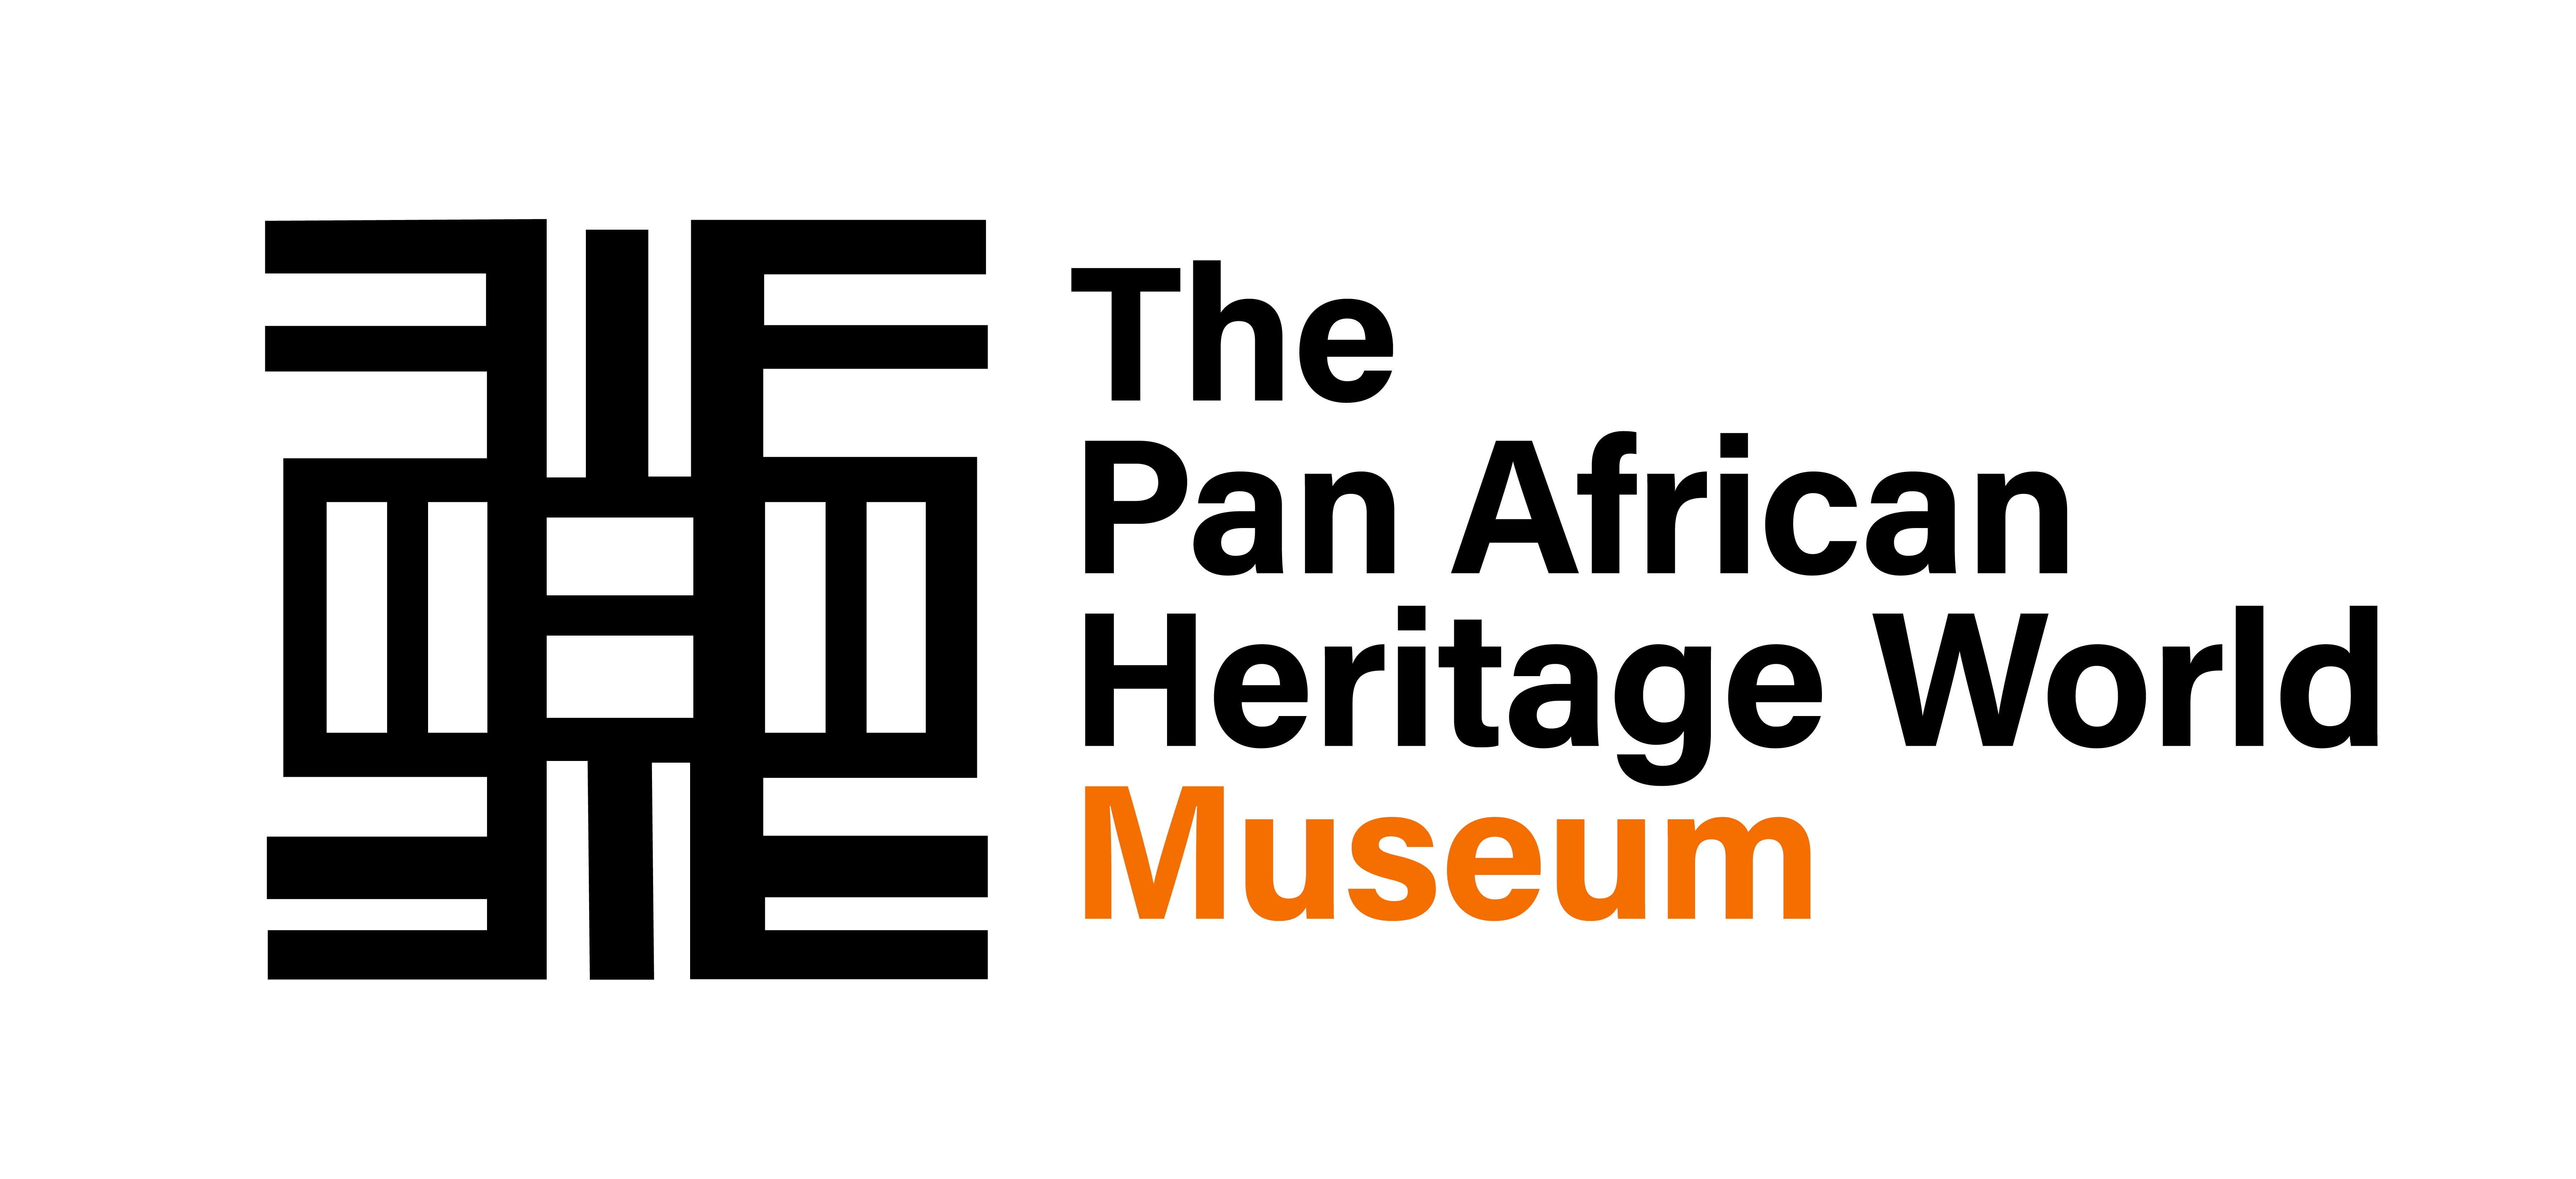 The Pan-African Heritage World Museum